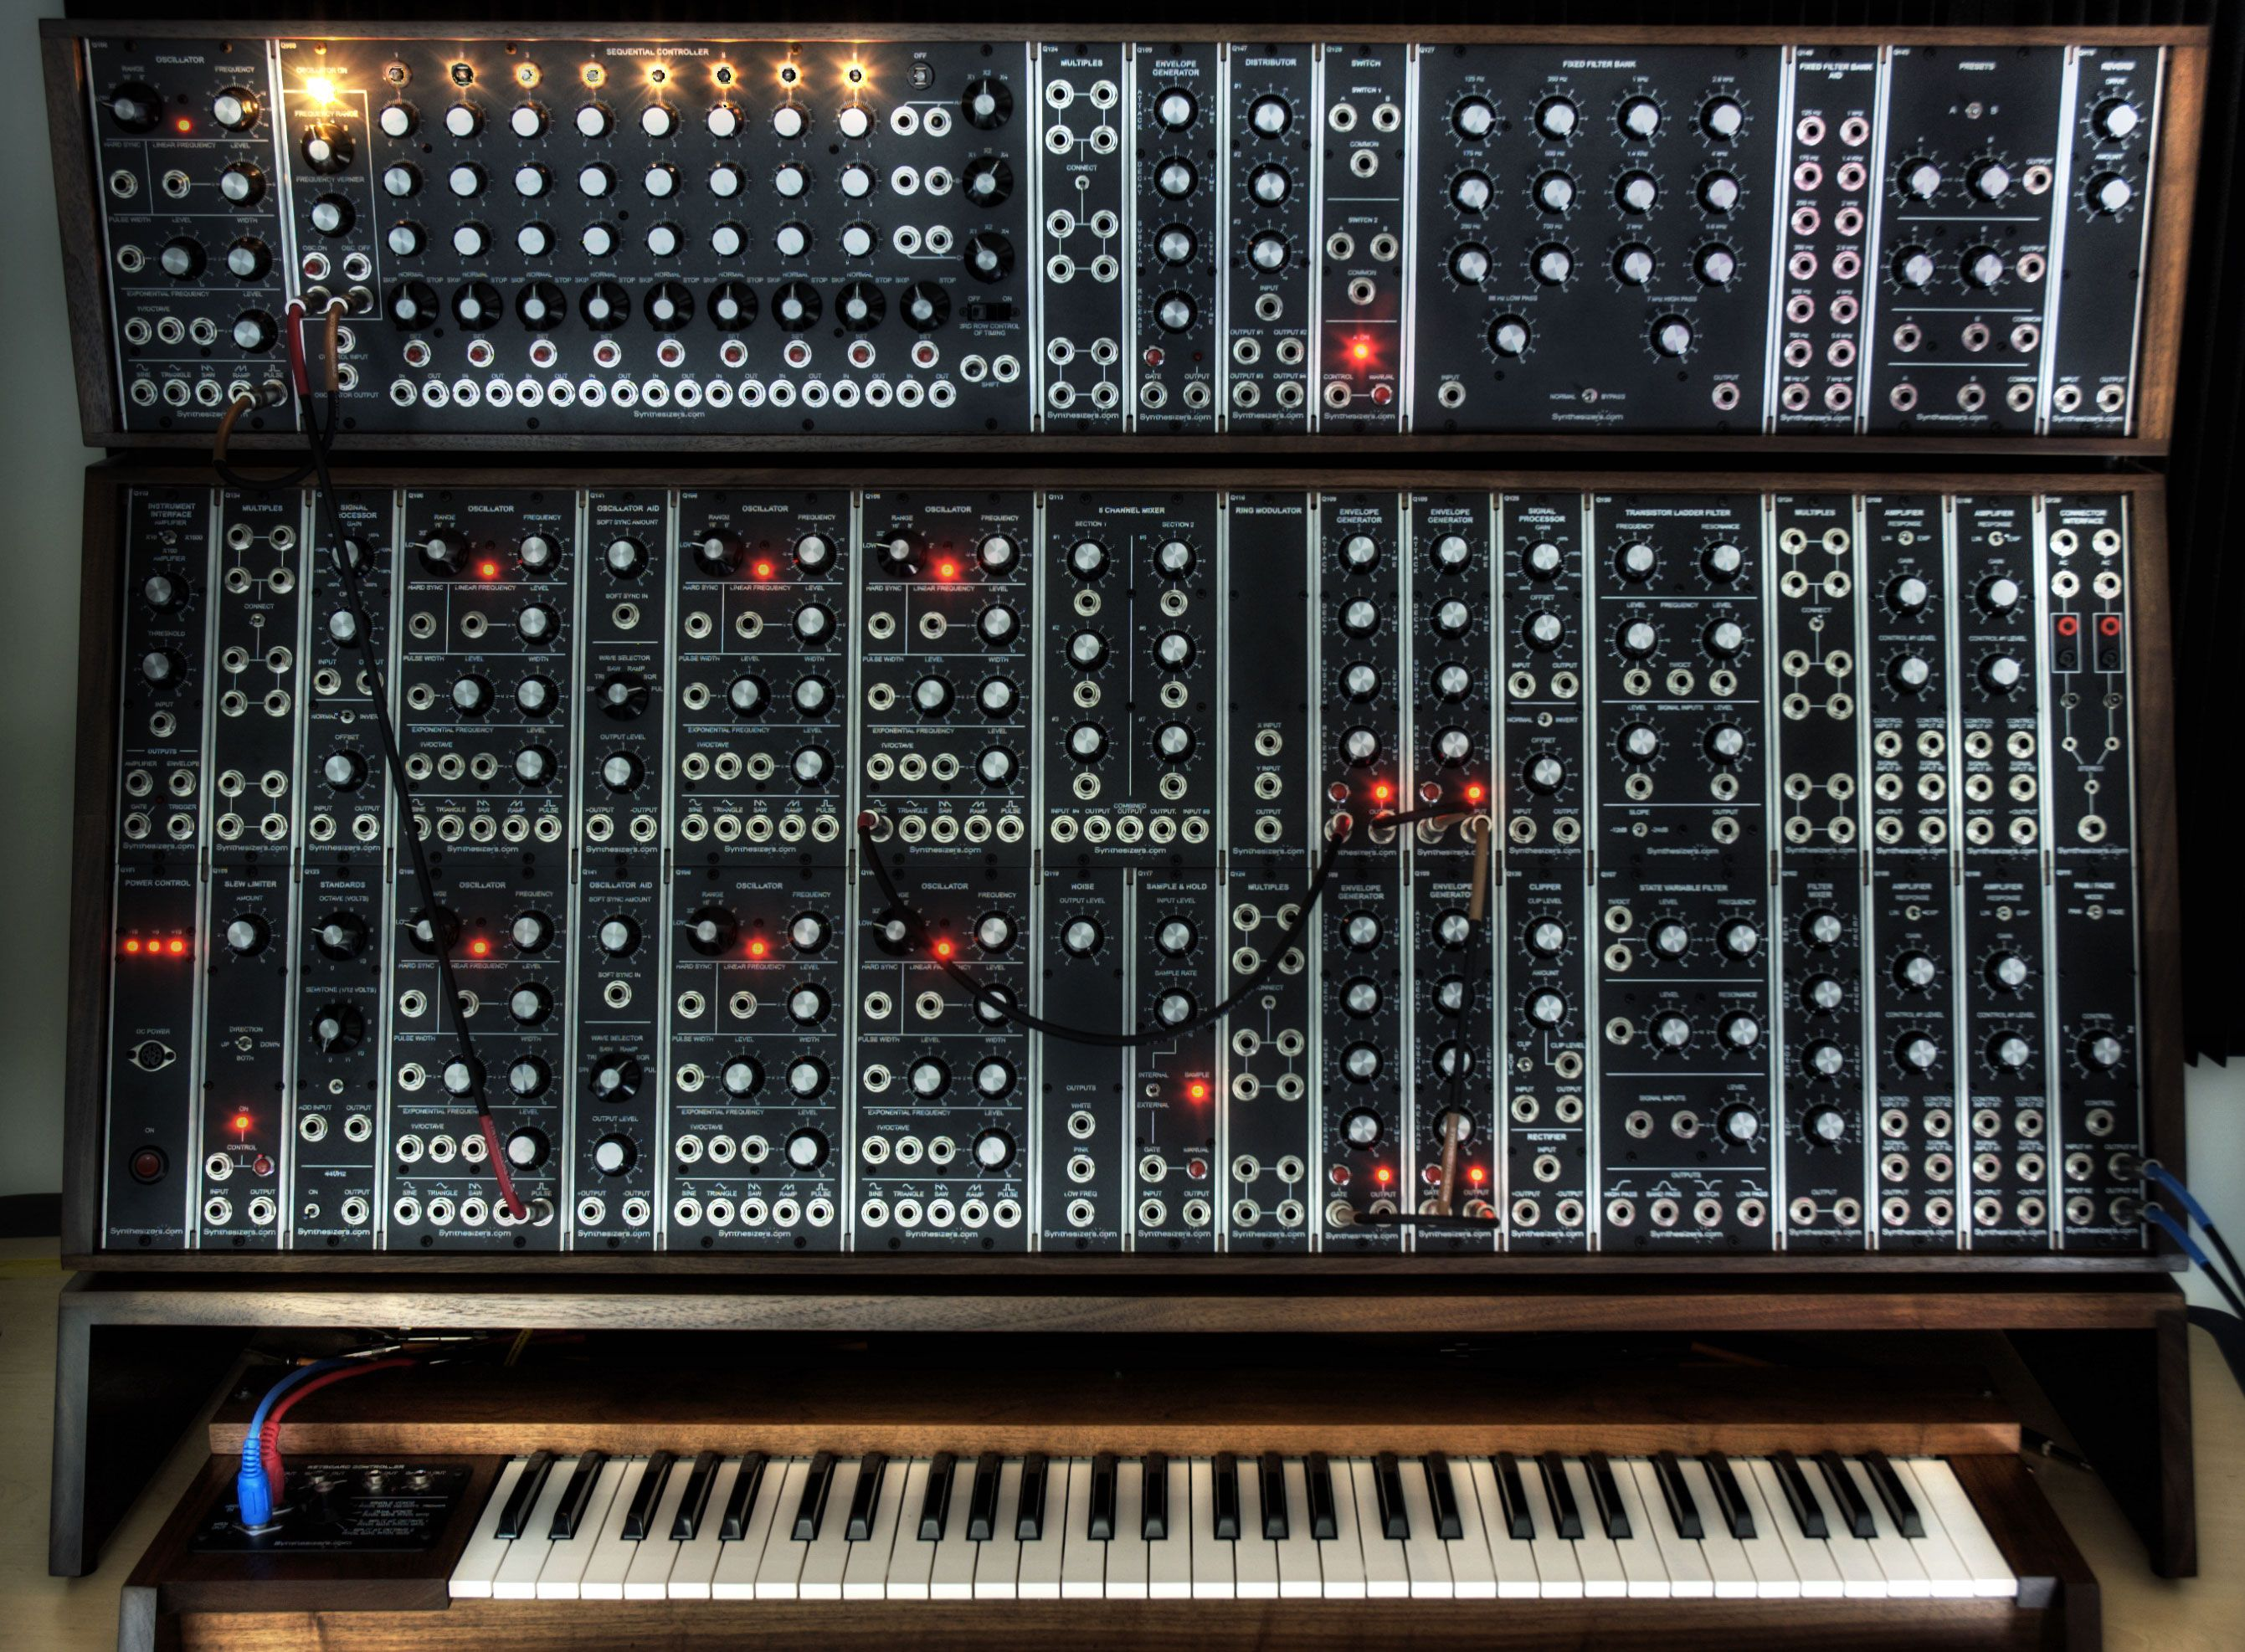 Modular Synthesis 101: A Guide to Eurorack Modular - Zeroes and Ones